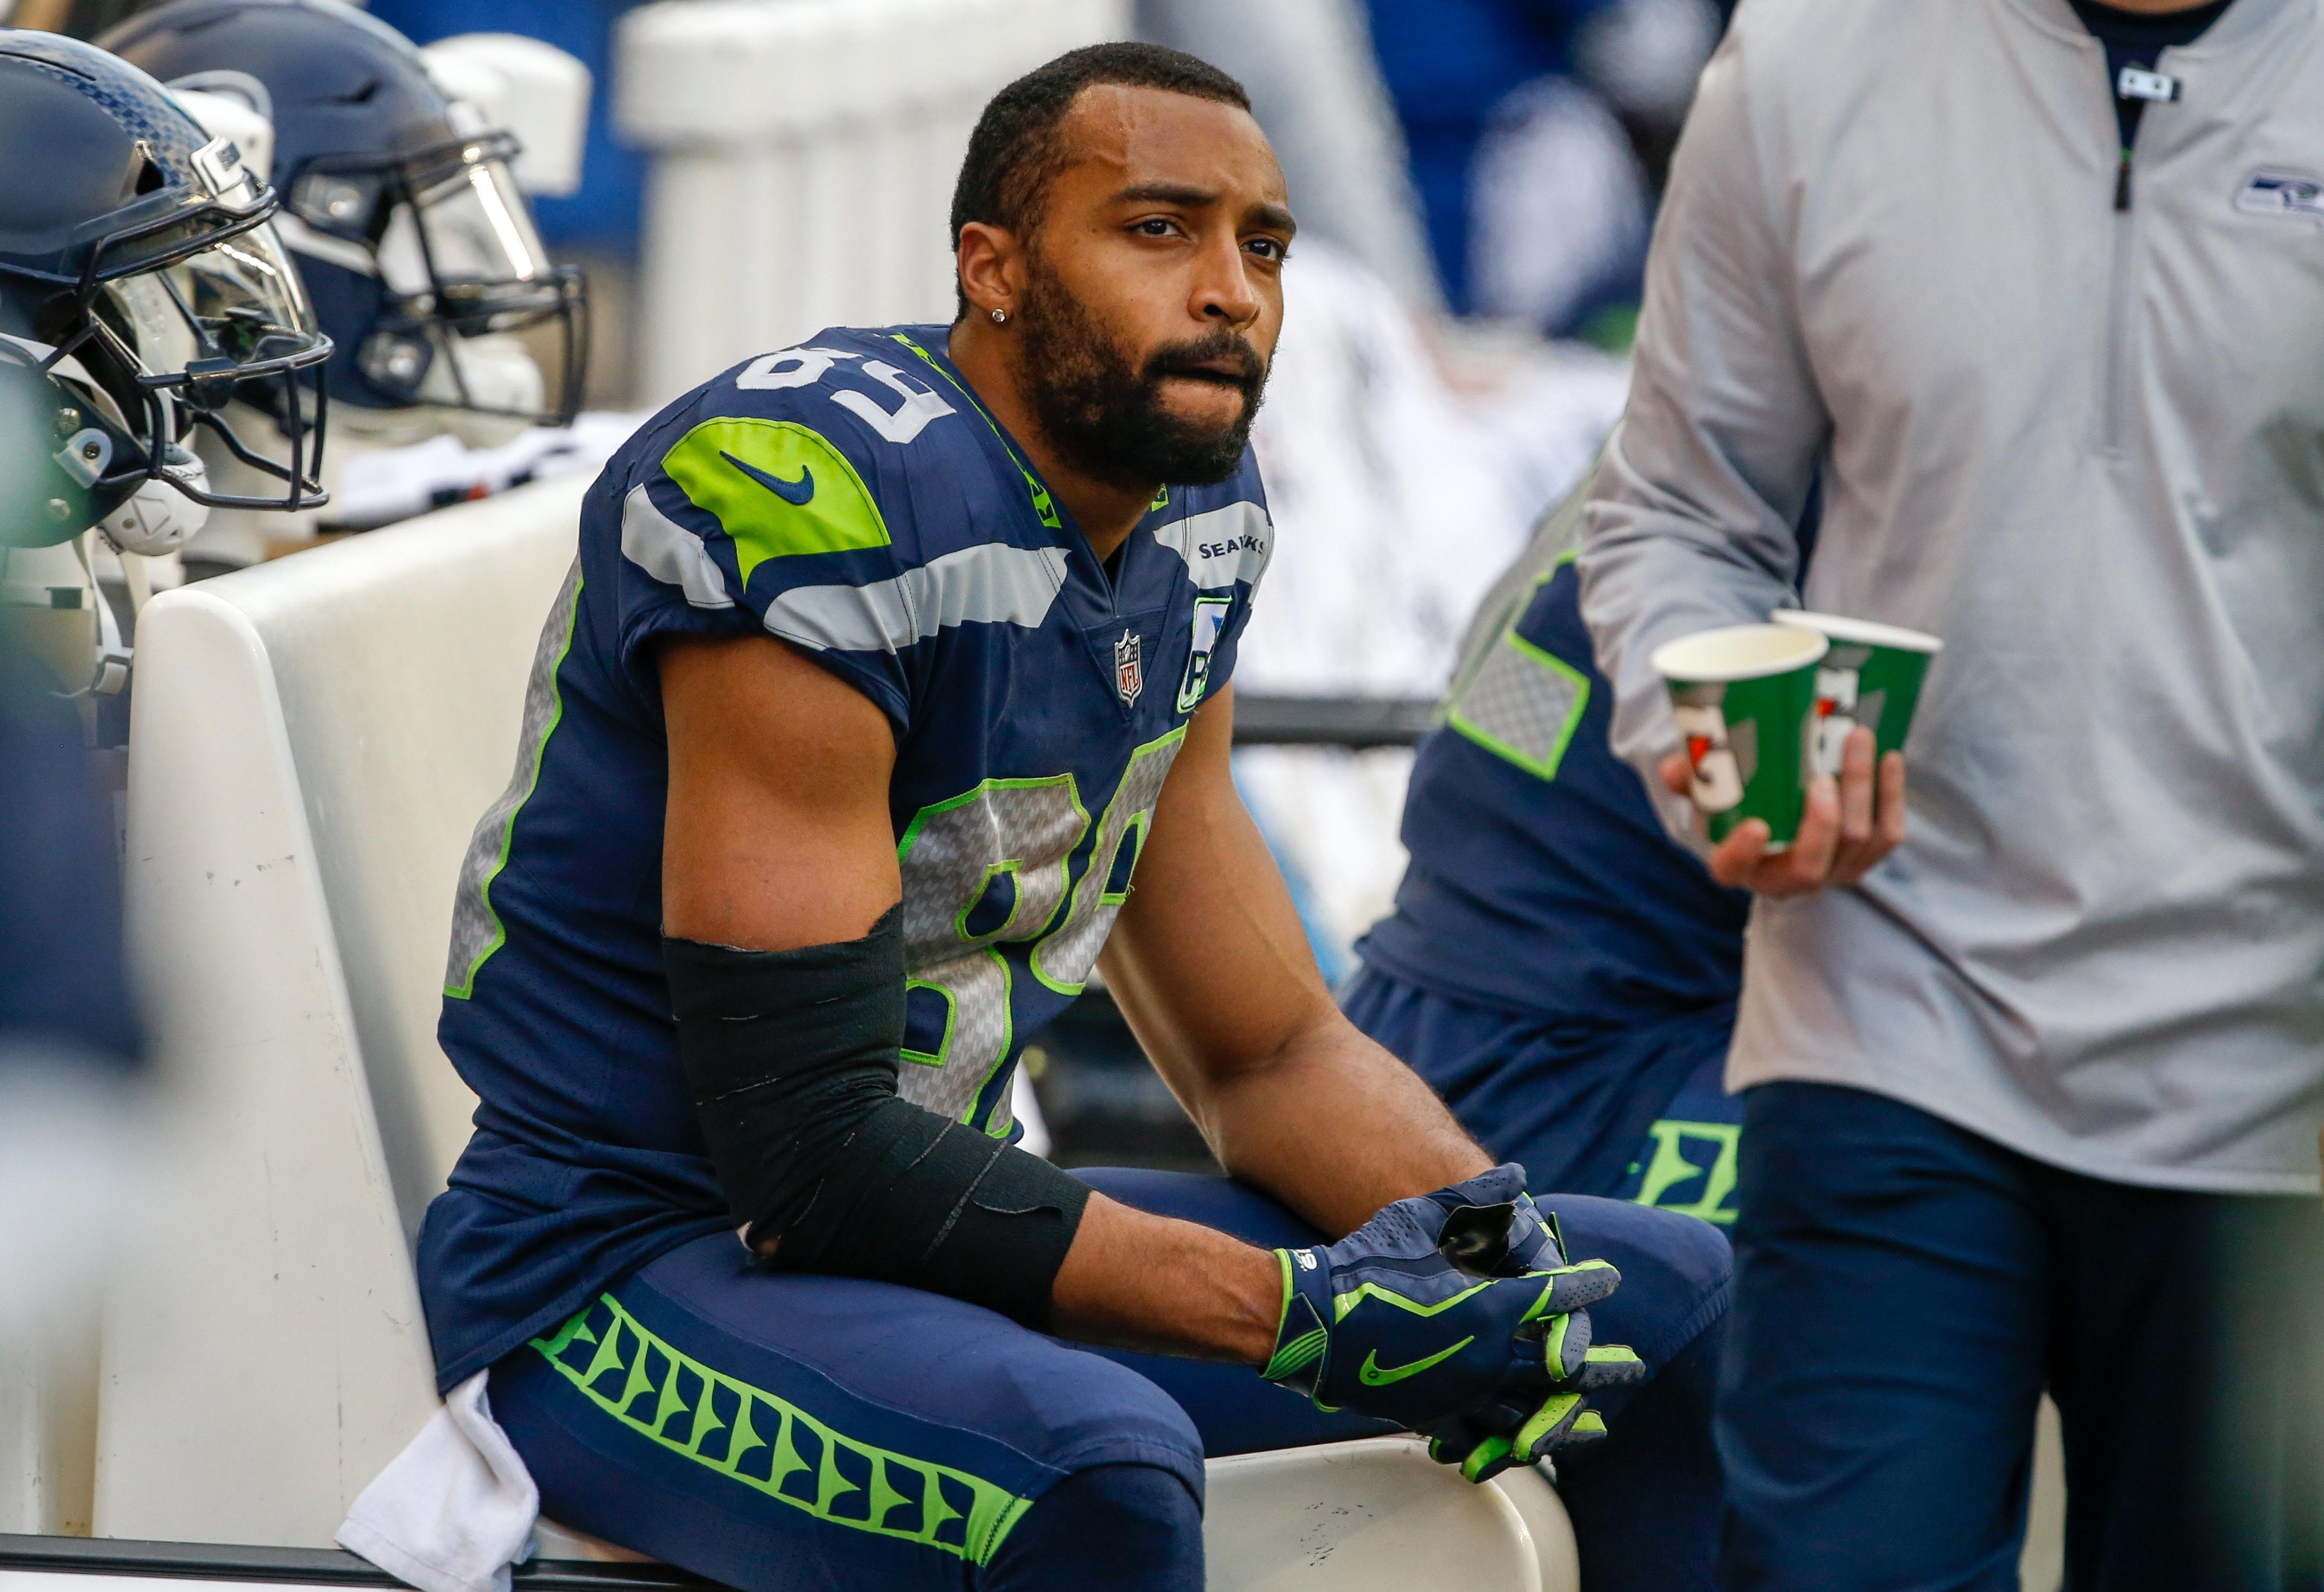 Opinion: NFL players aren't cyborgs; more big names are released due to their broken bodies